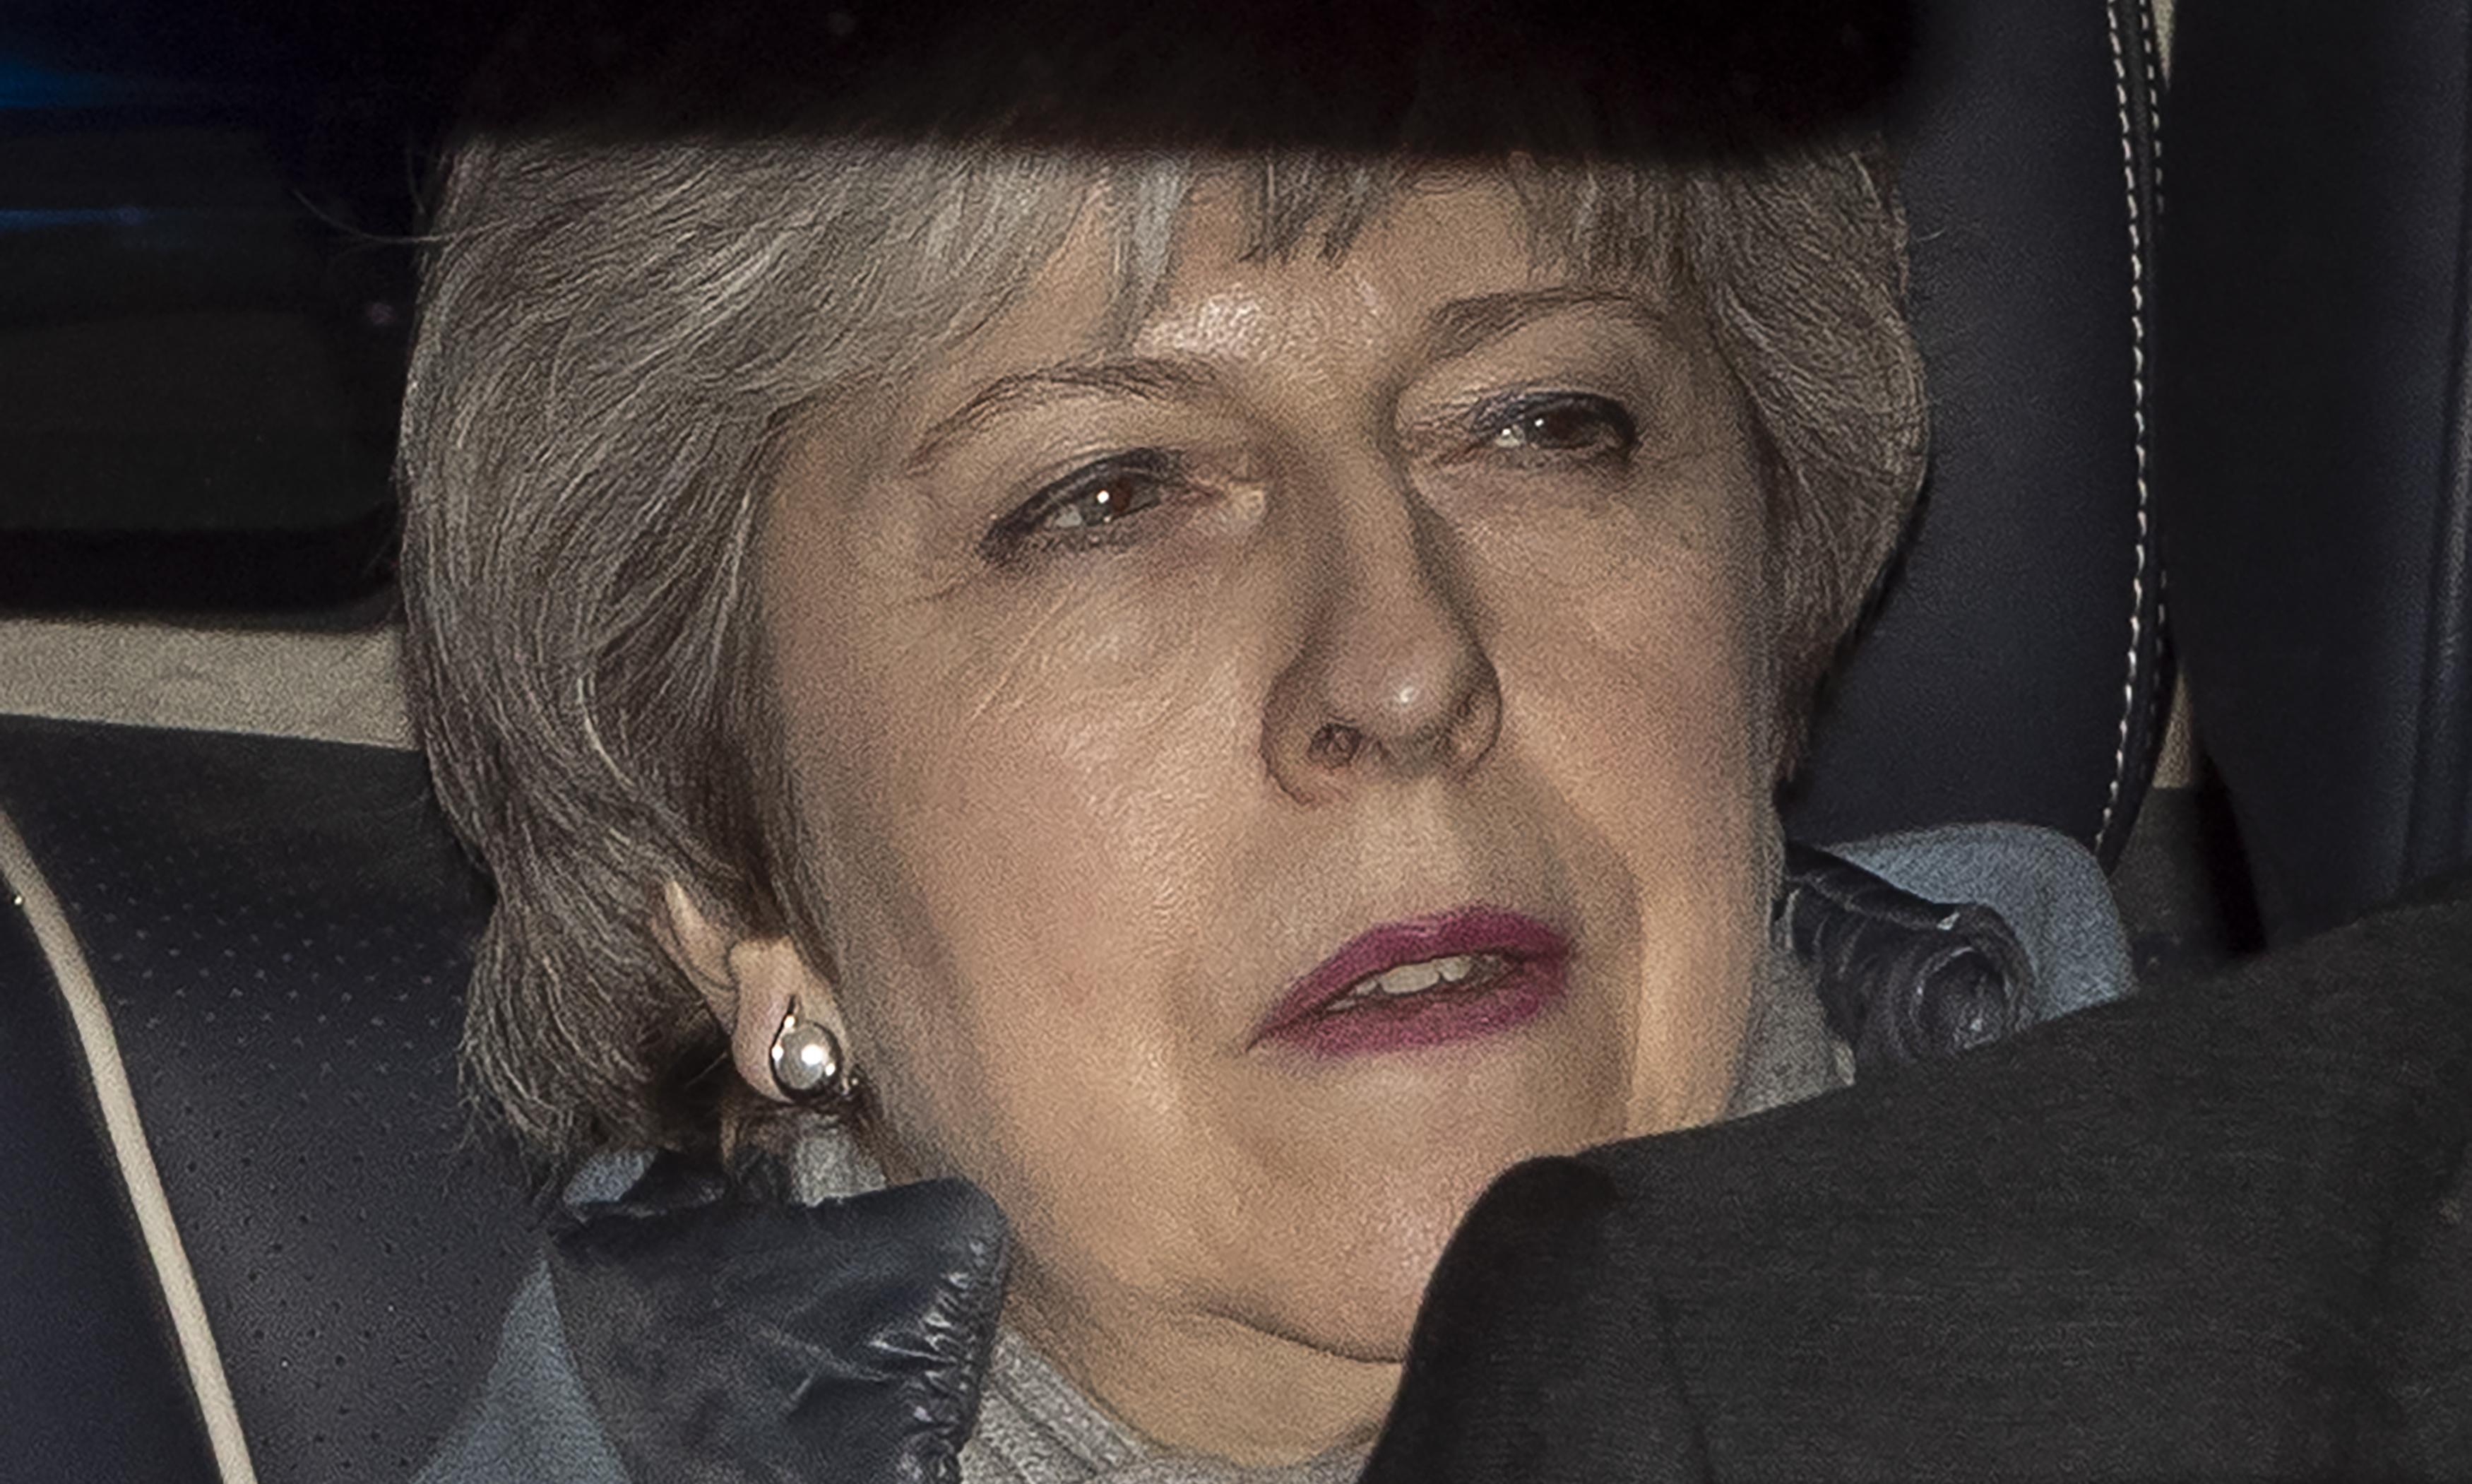 As Tory MPs plot May's downfall, her last allies battle for her survival